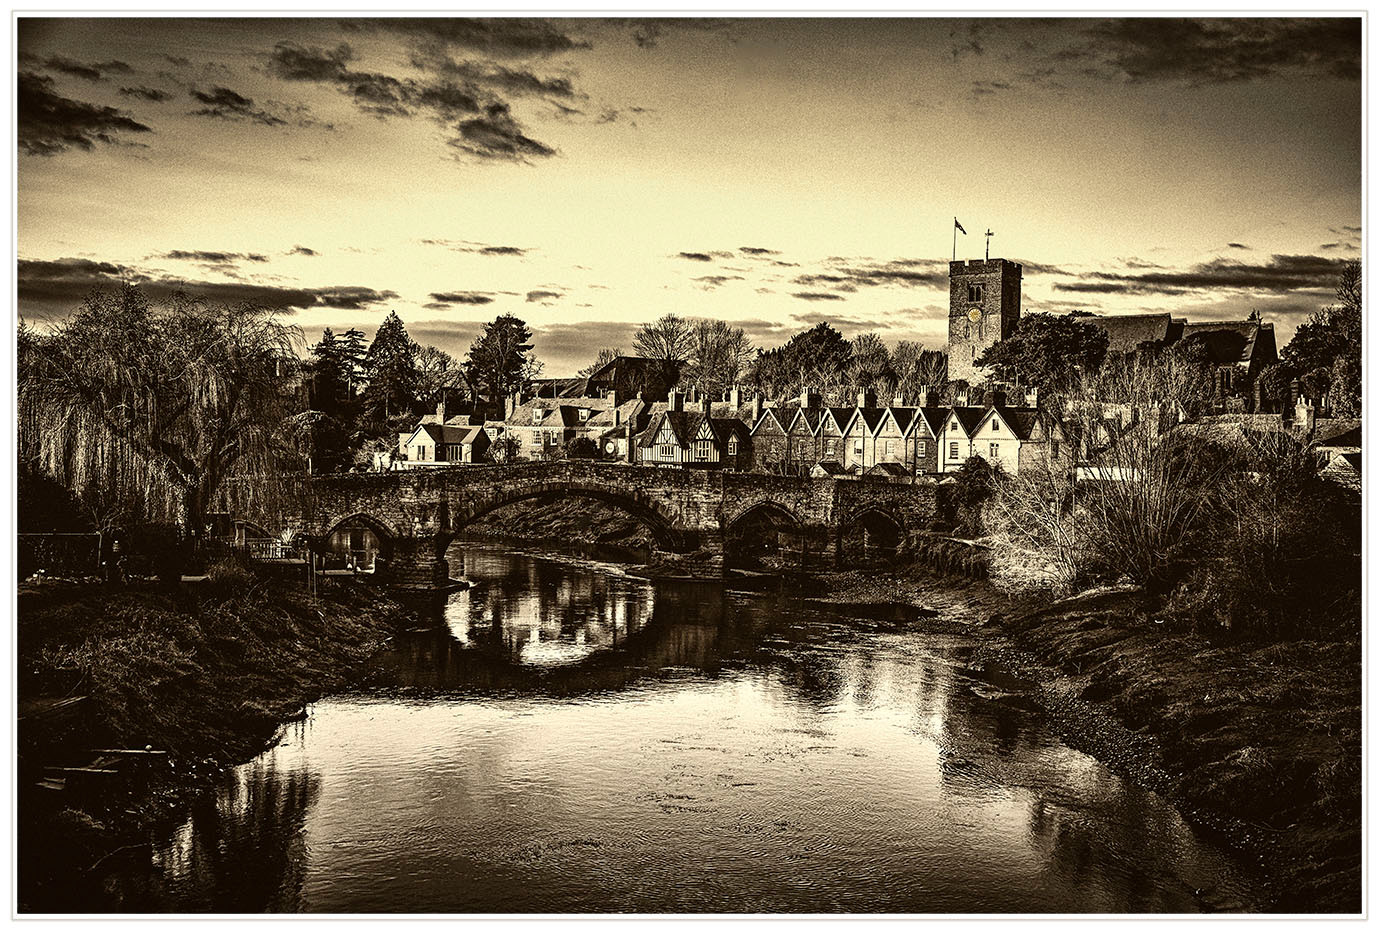 19 VICTORIAN VIEW OF AYLESFORD by Philip Easom